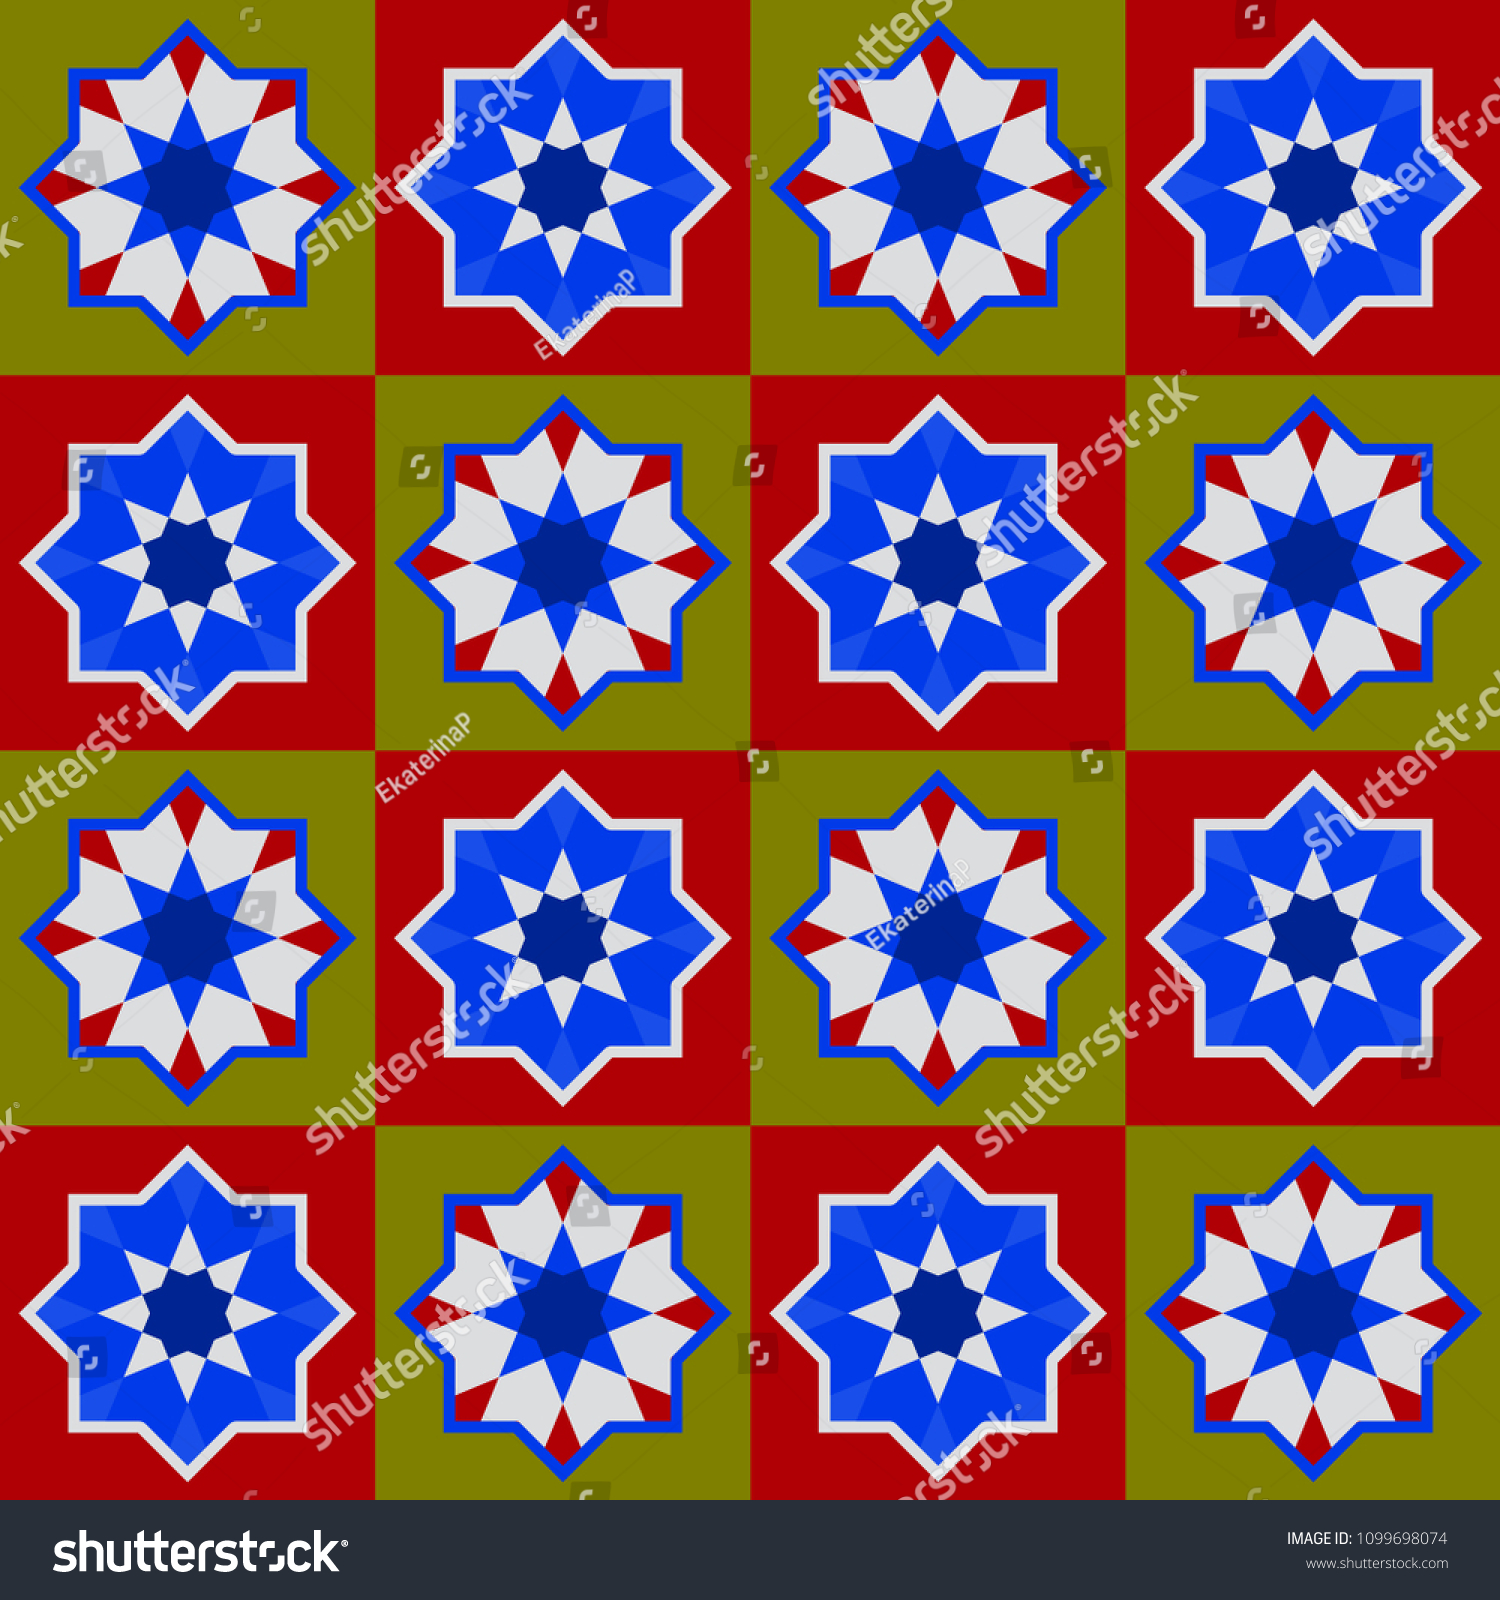 Moroccan Seamless Pattern, Morocco Patchwork Mosaic Traditional Folk Geometric Ornament